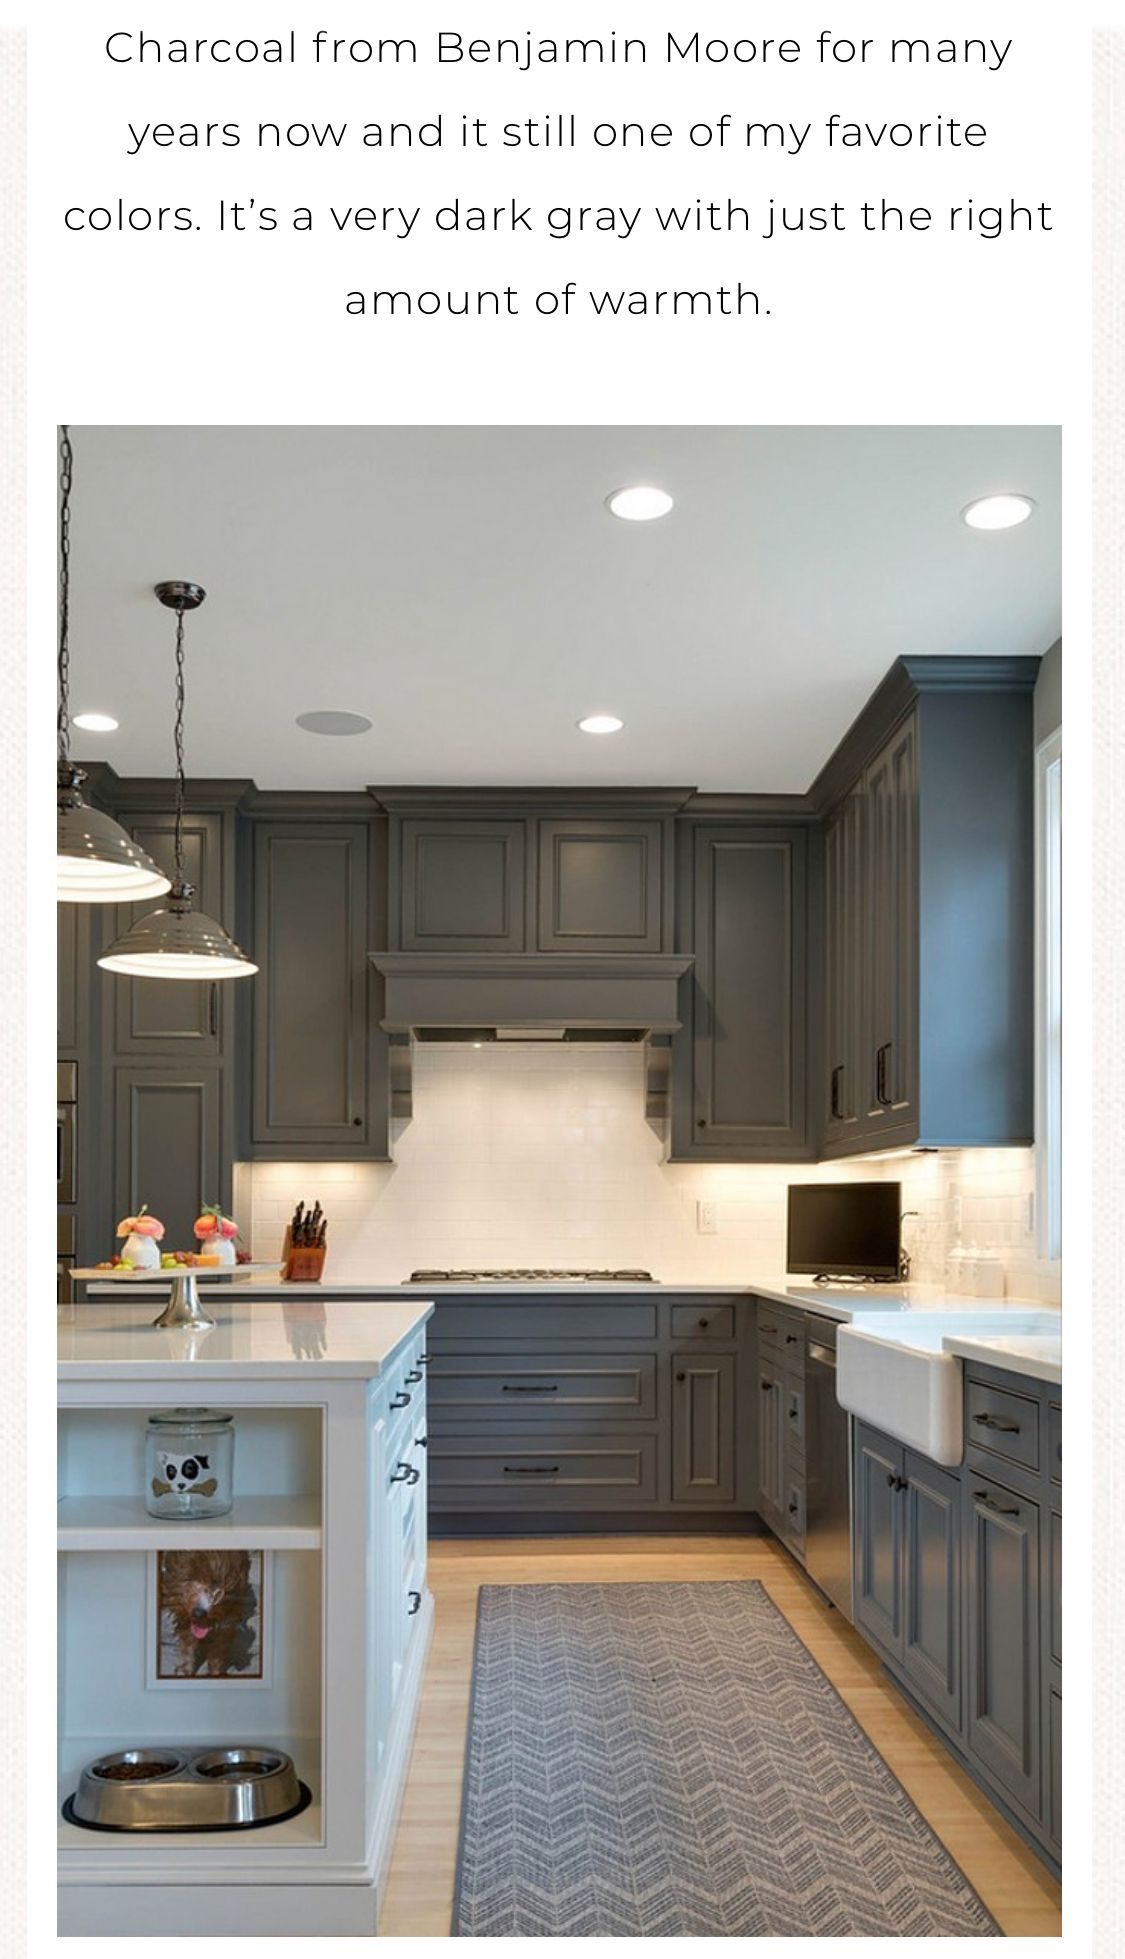 Bm Kendall Charcoal Darker Cabinet Color Pretty Kitchens Decor Charcoal Kitchen Blue Kitchen Cabinets